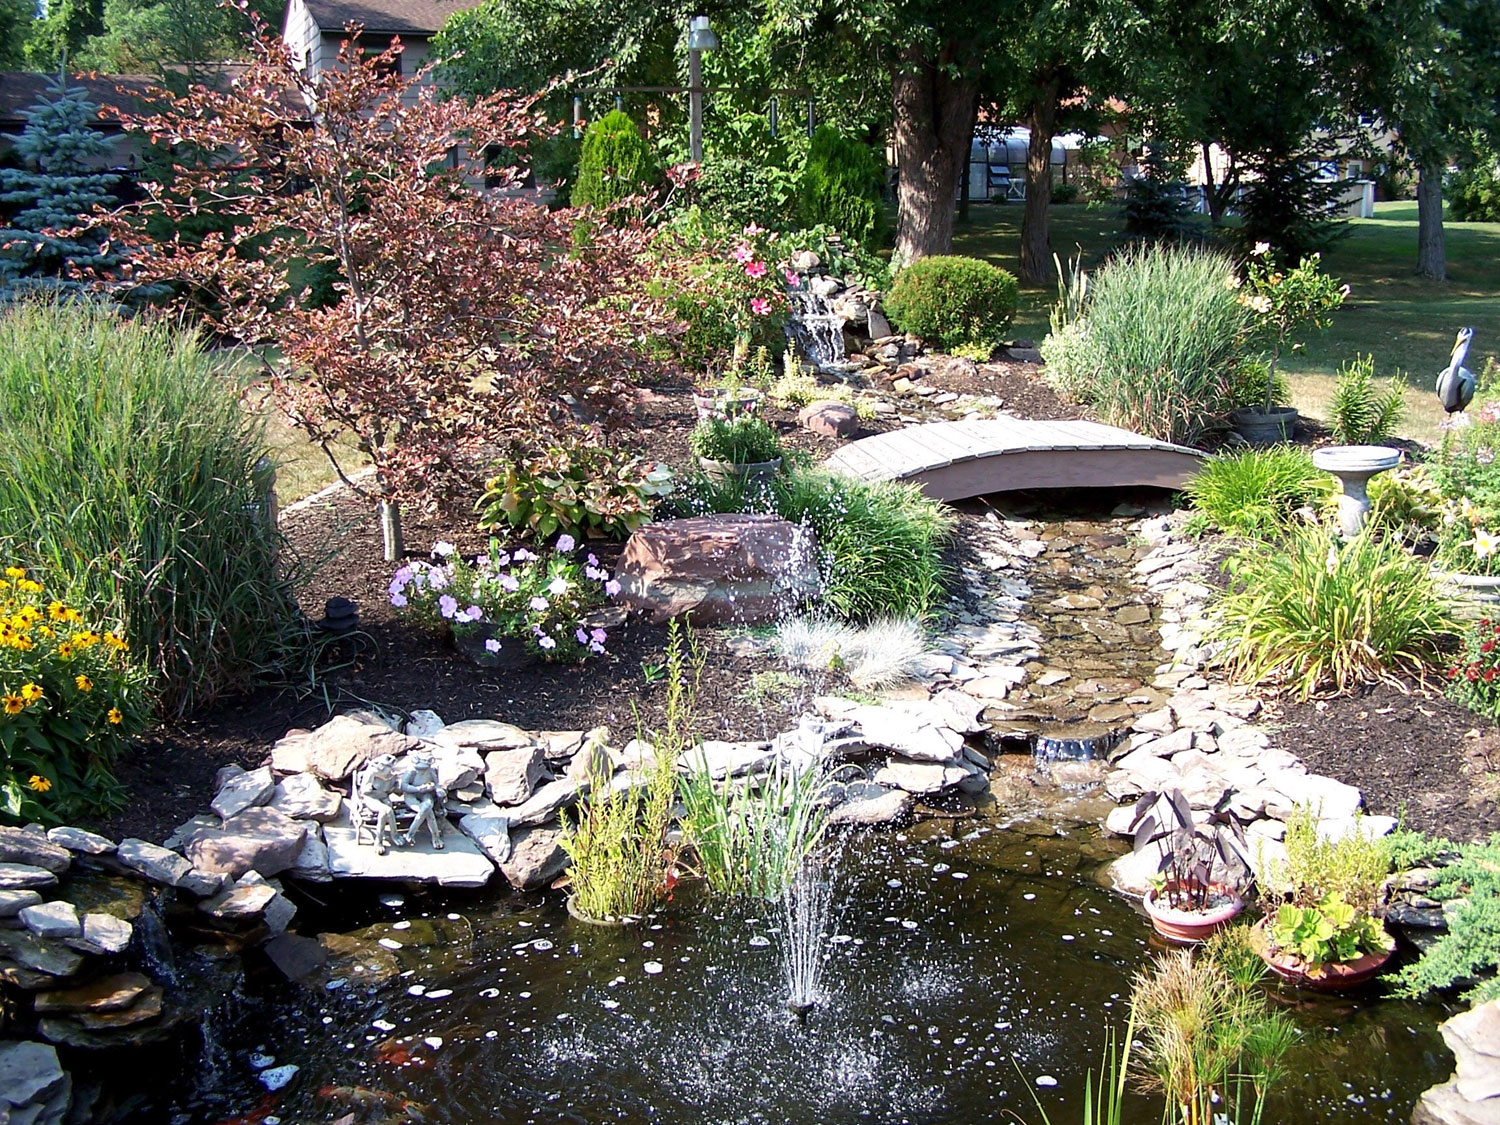 Easy backyard pond ideas various design inspiration for backyard Design pond